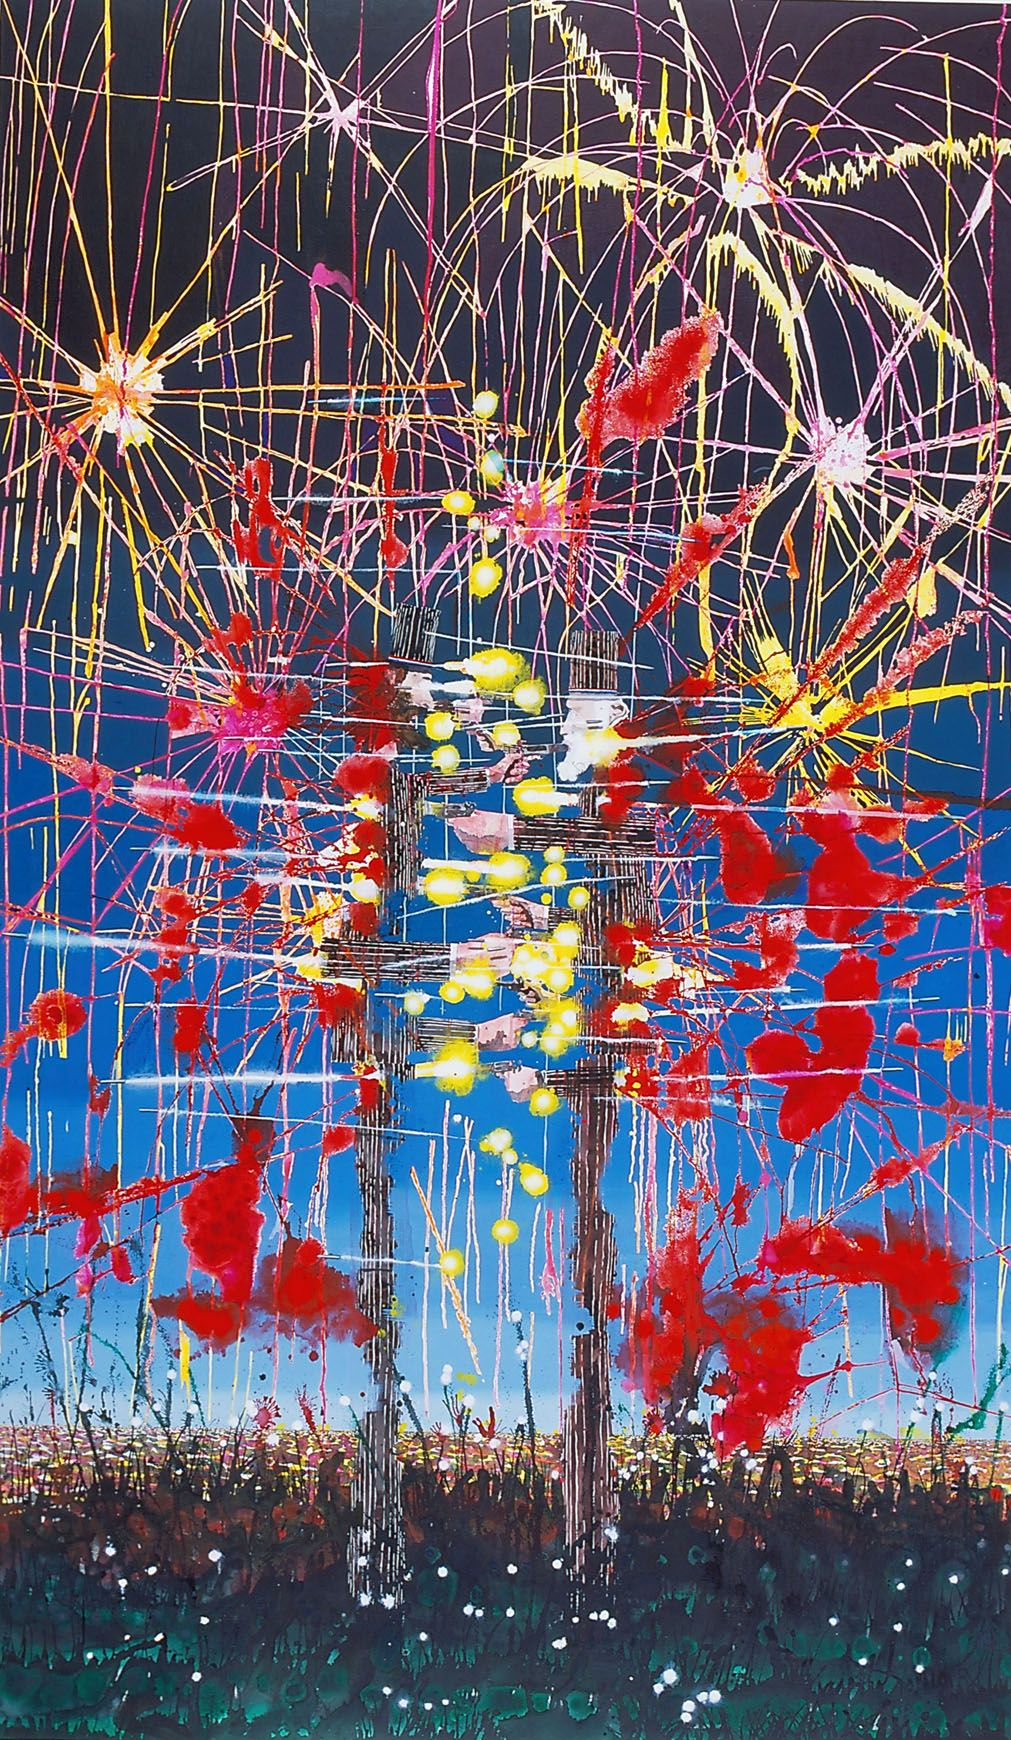 a mixed media artwork of fireworks by barnaby furnas